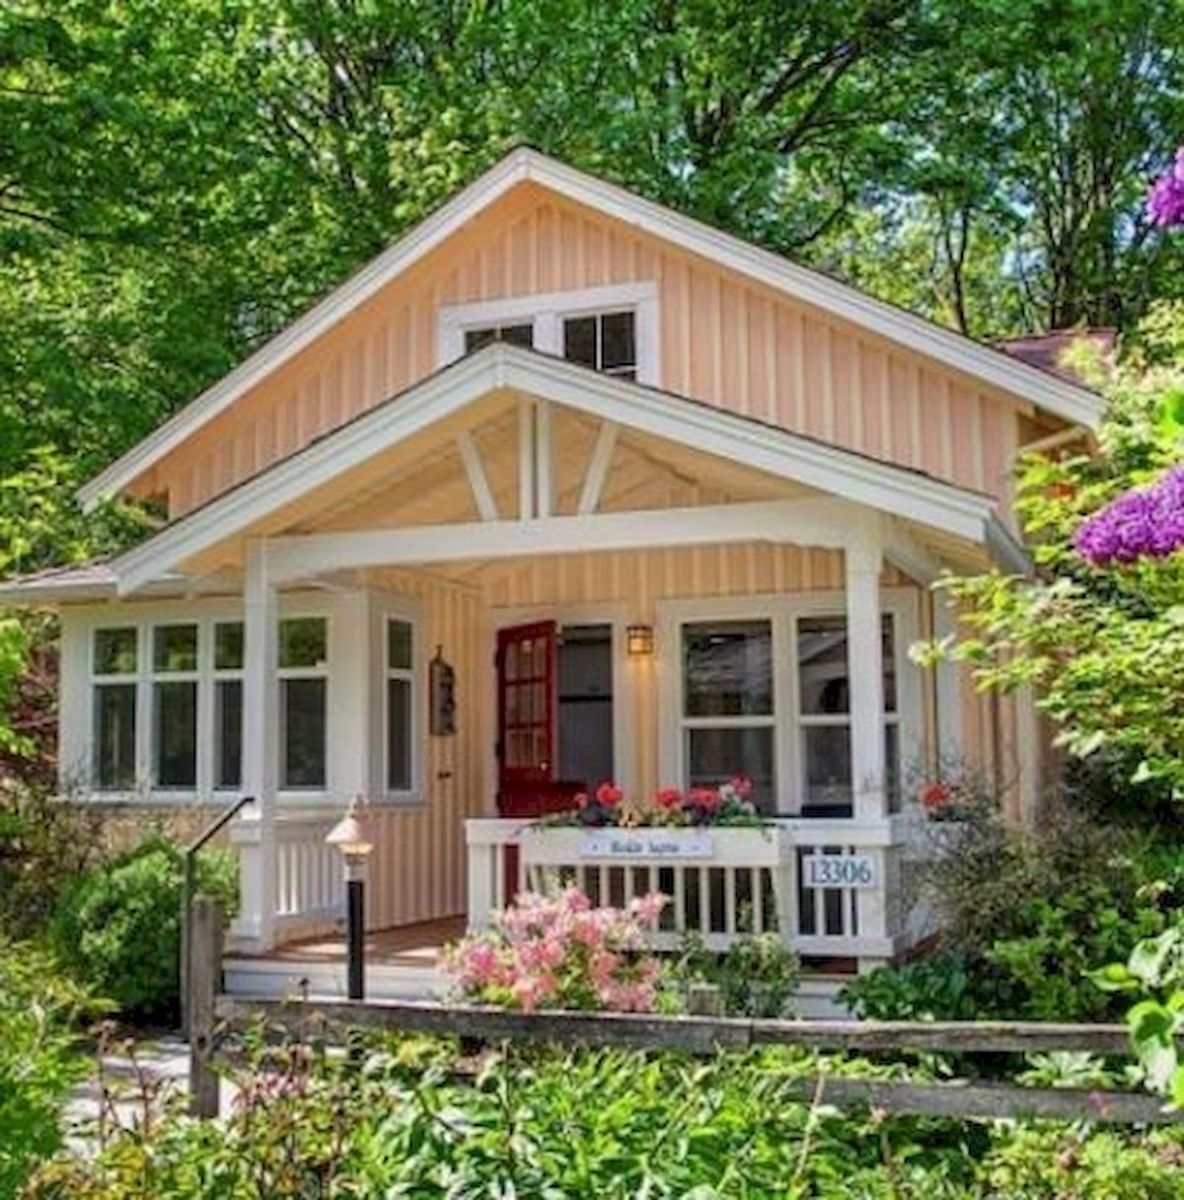 33 Best Tiny House Plans Small Cottages Design Ideas (2)